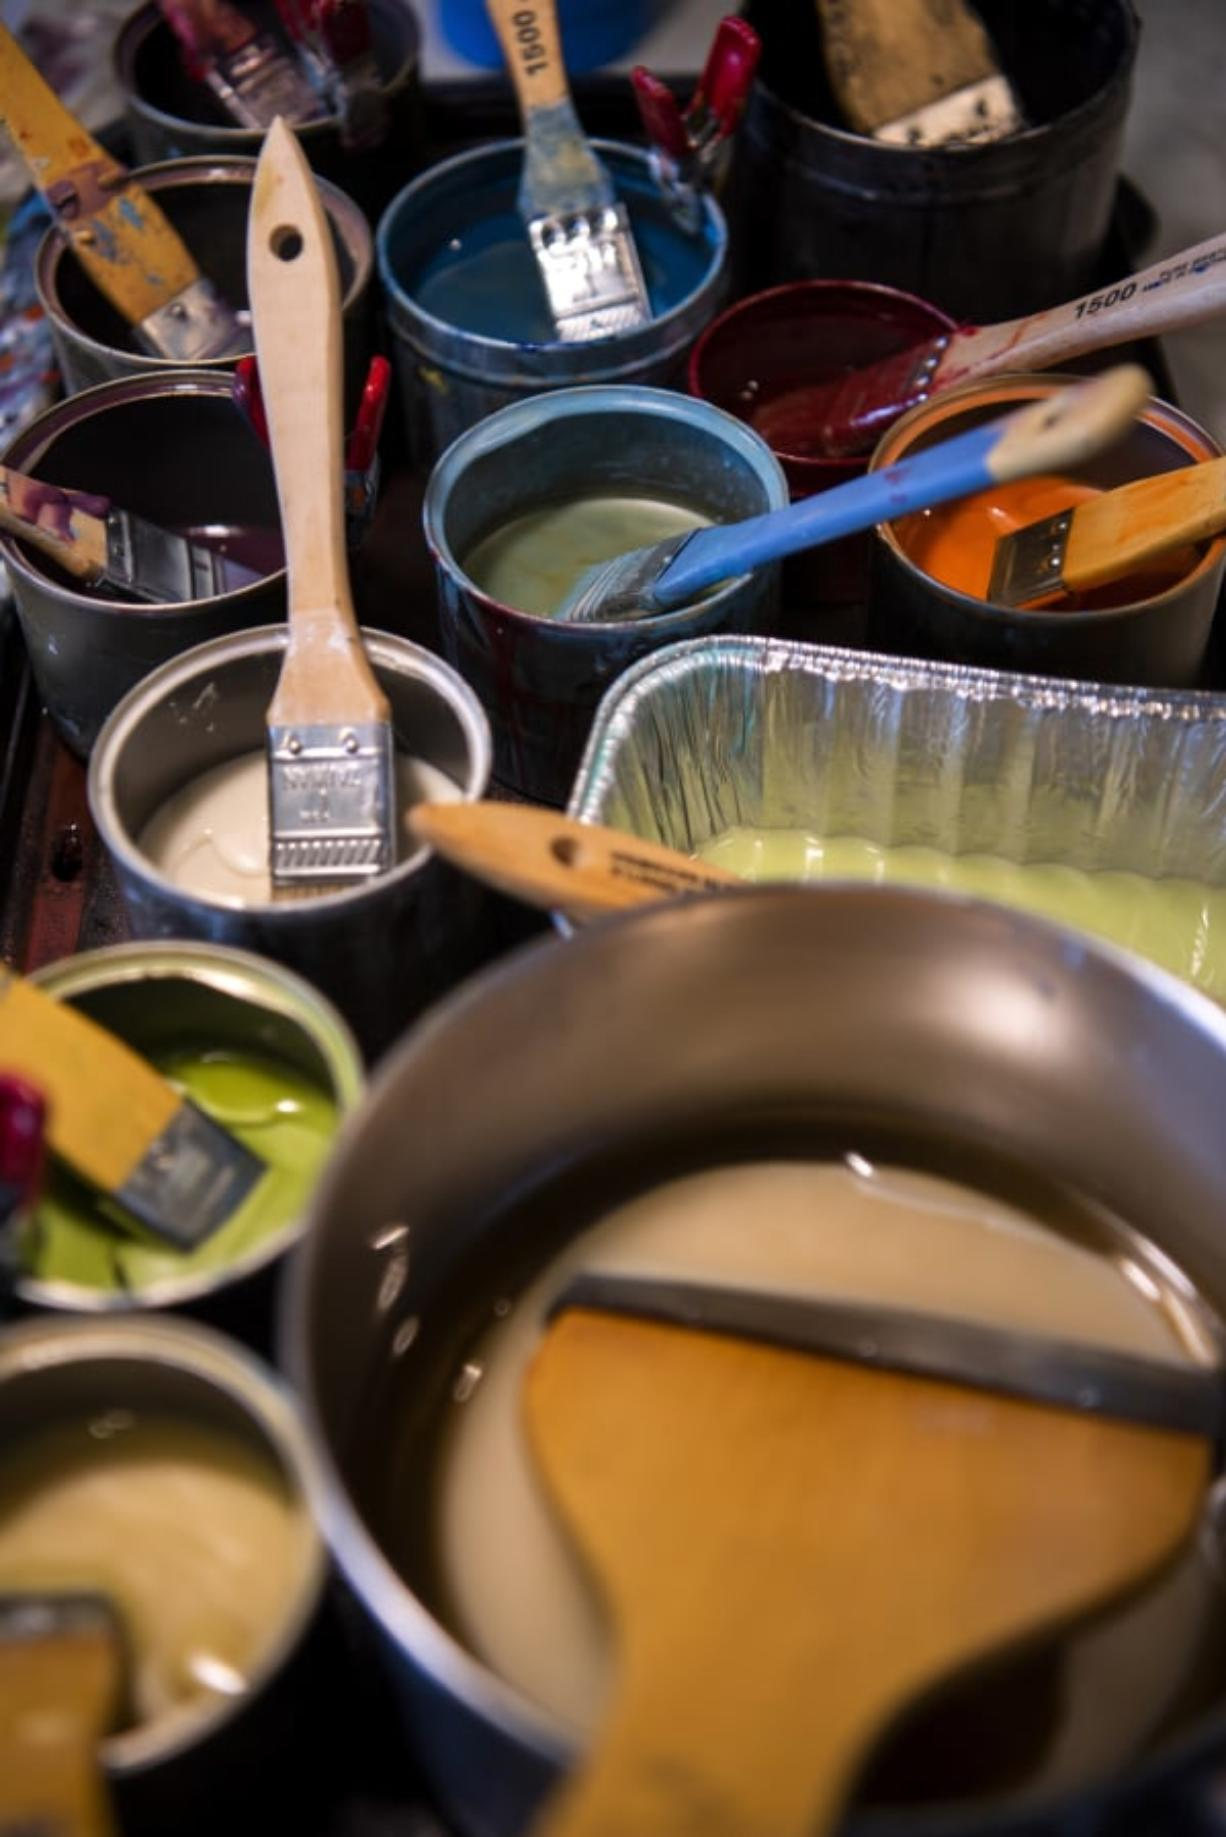 Many colorful mixtures of encaustic (beeswax) and dammar resin sit Tracy Simpson's home studio in Washougal, ready to go; all she has to do is melt them, or make some more, to start adding colors to her works in progress. Alisha Jucevic/The Columbian